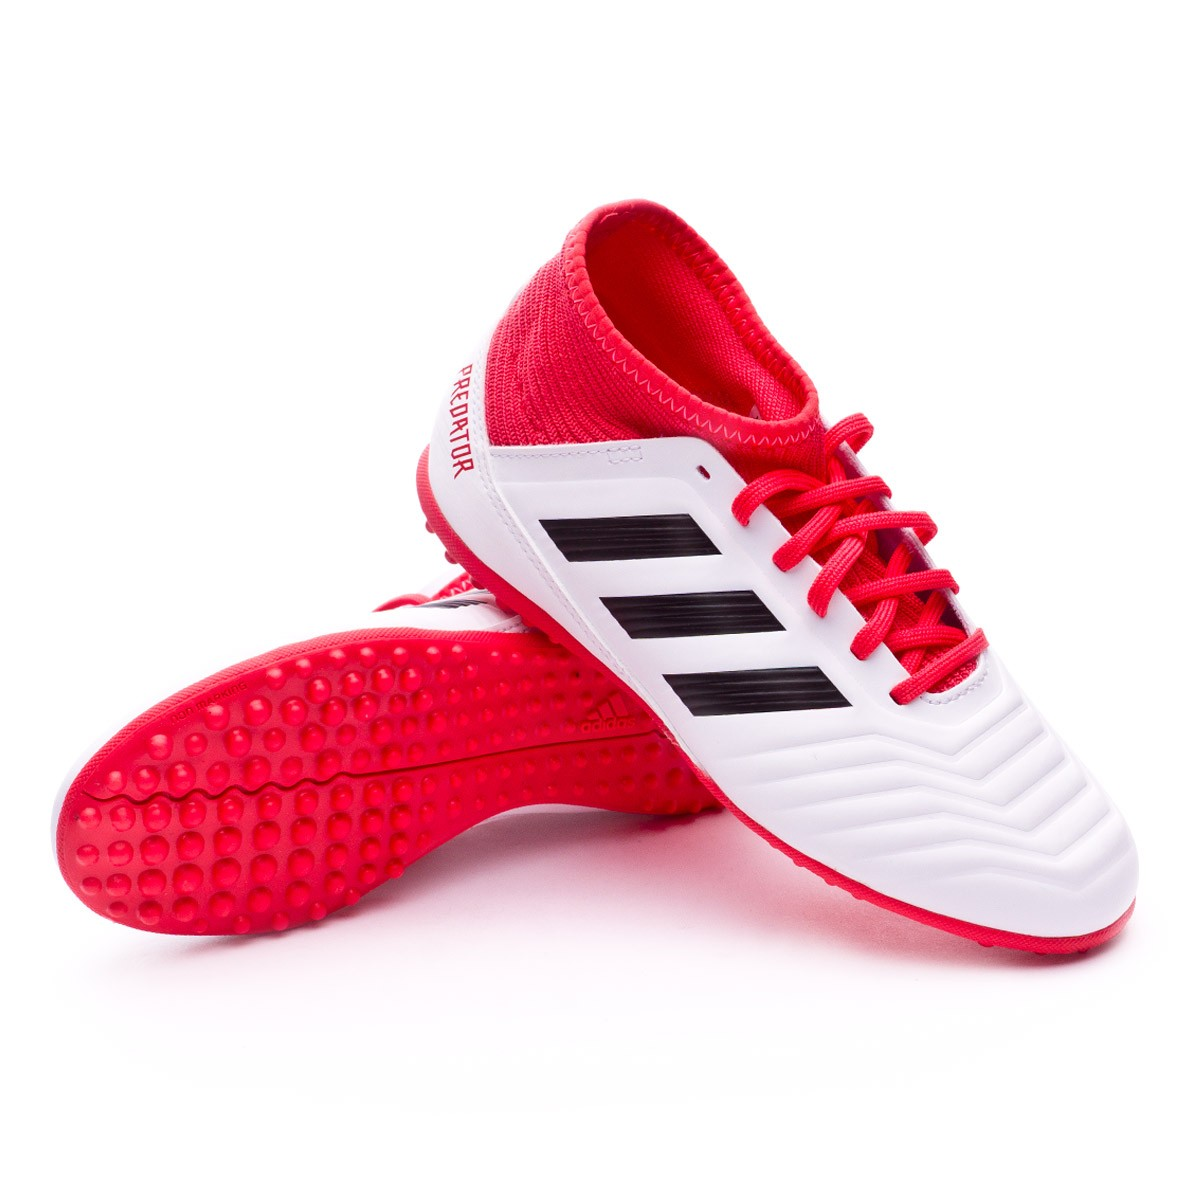 5c356a81a03 adidas Kids Predator Tango 18.3 Turf Football Boot. White-Core black-Real  coral ...